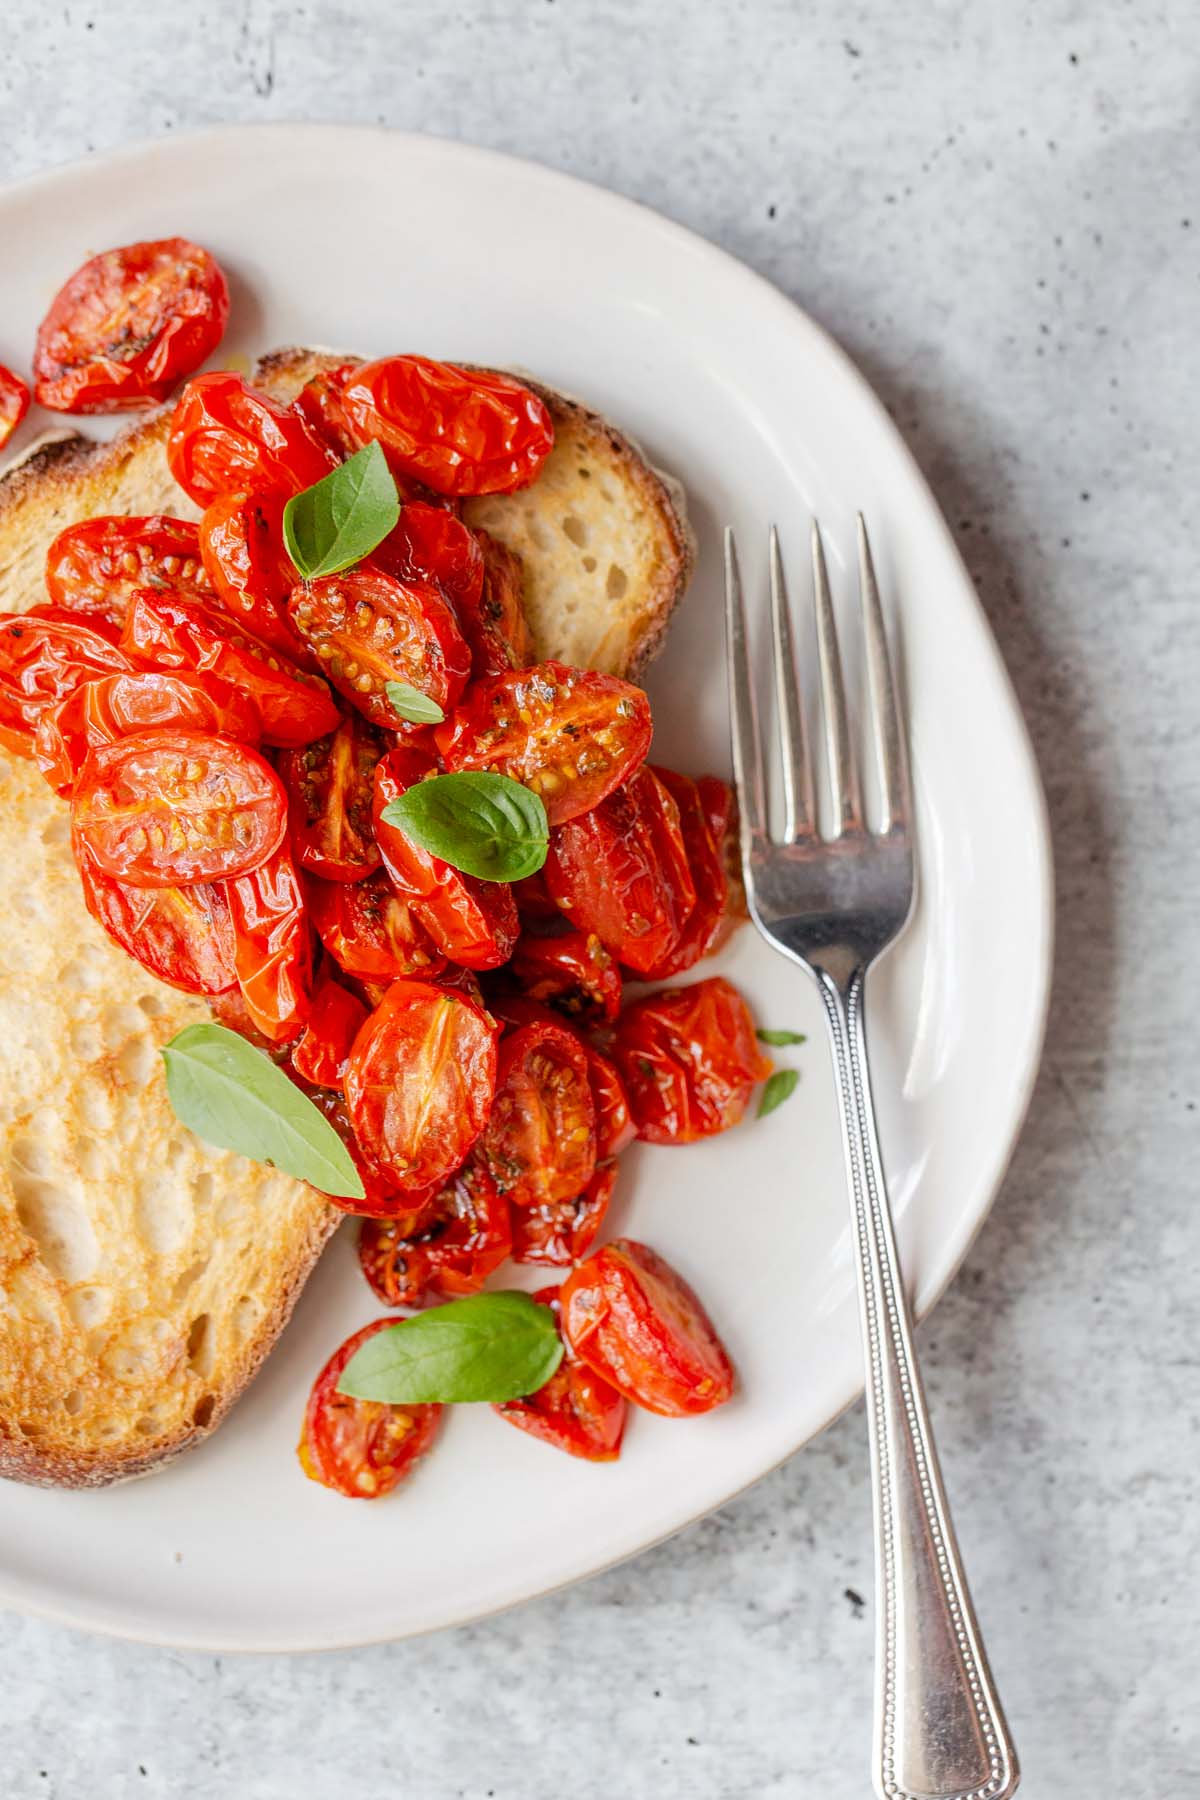 tomatoes and basil over toast